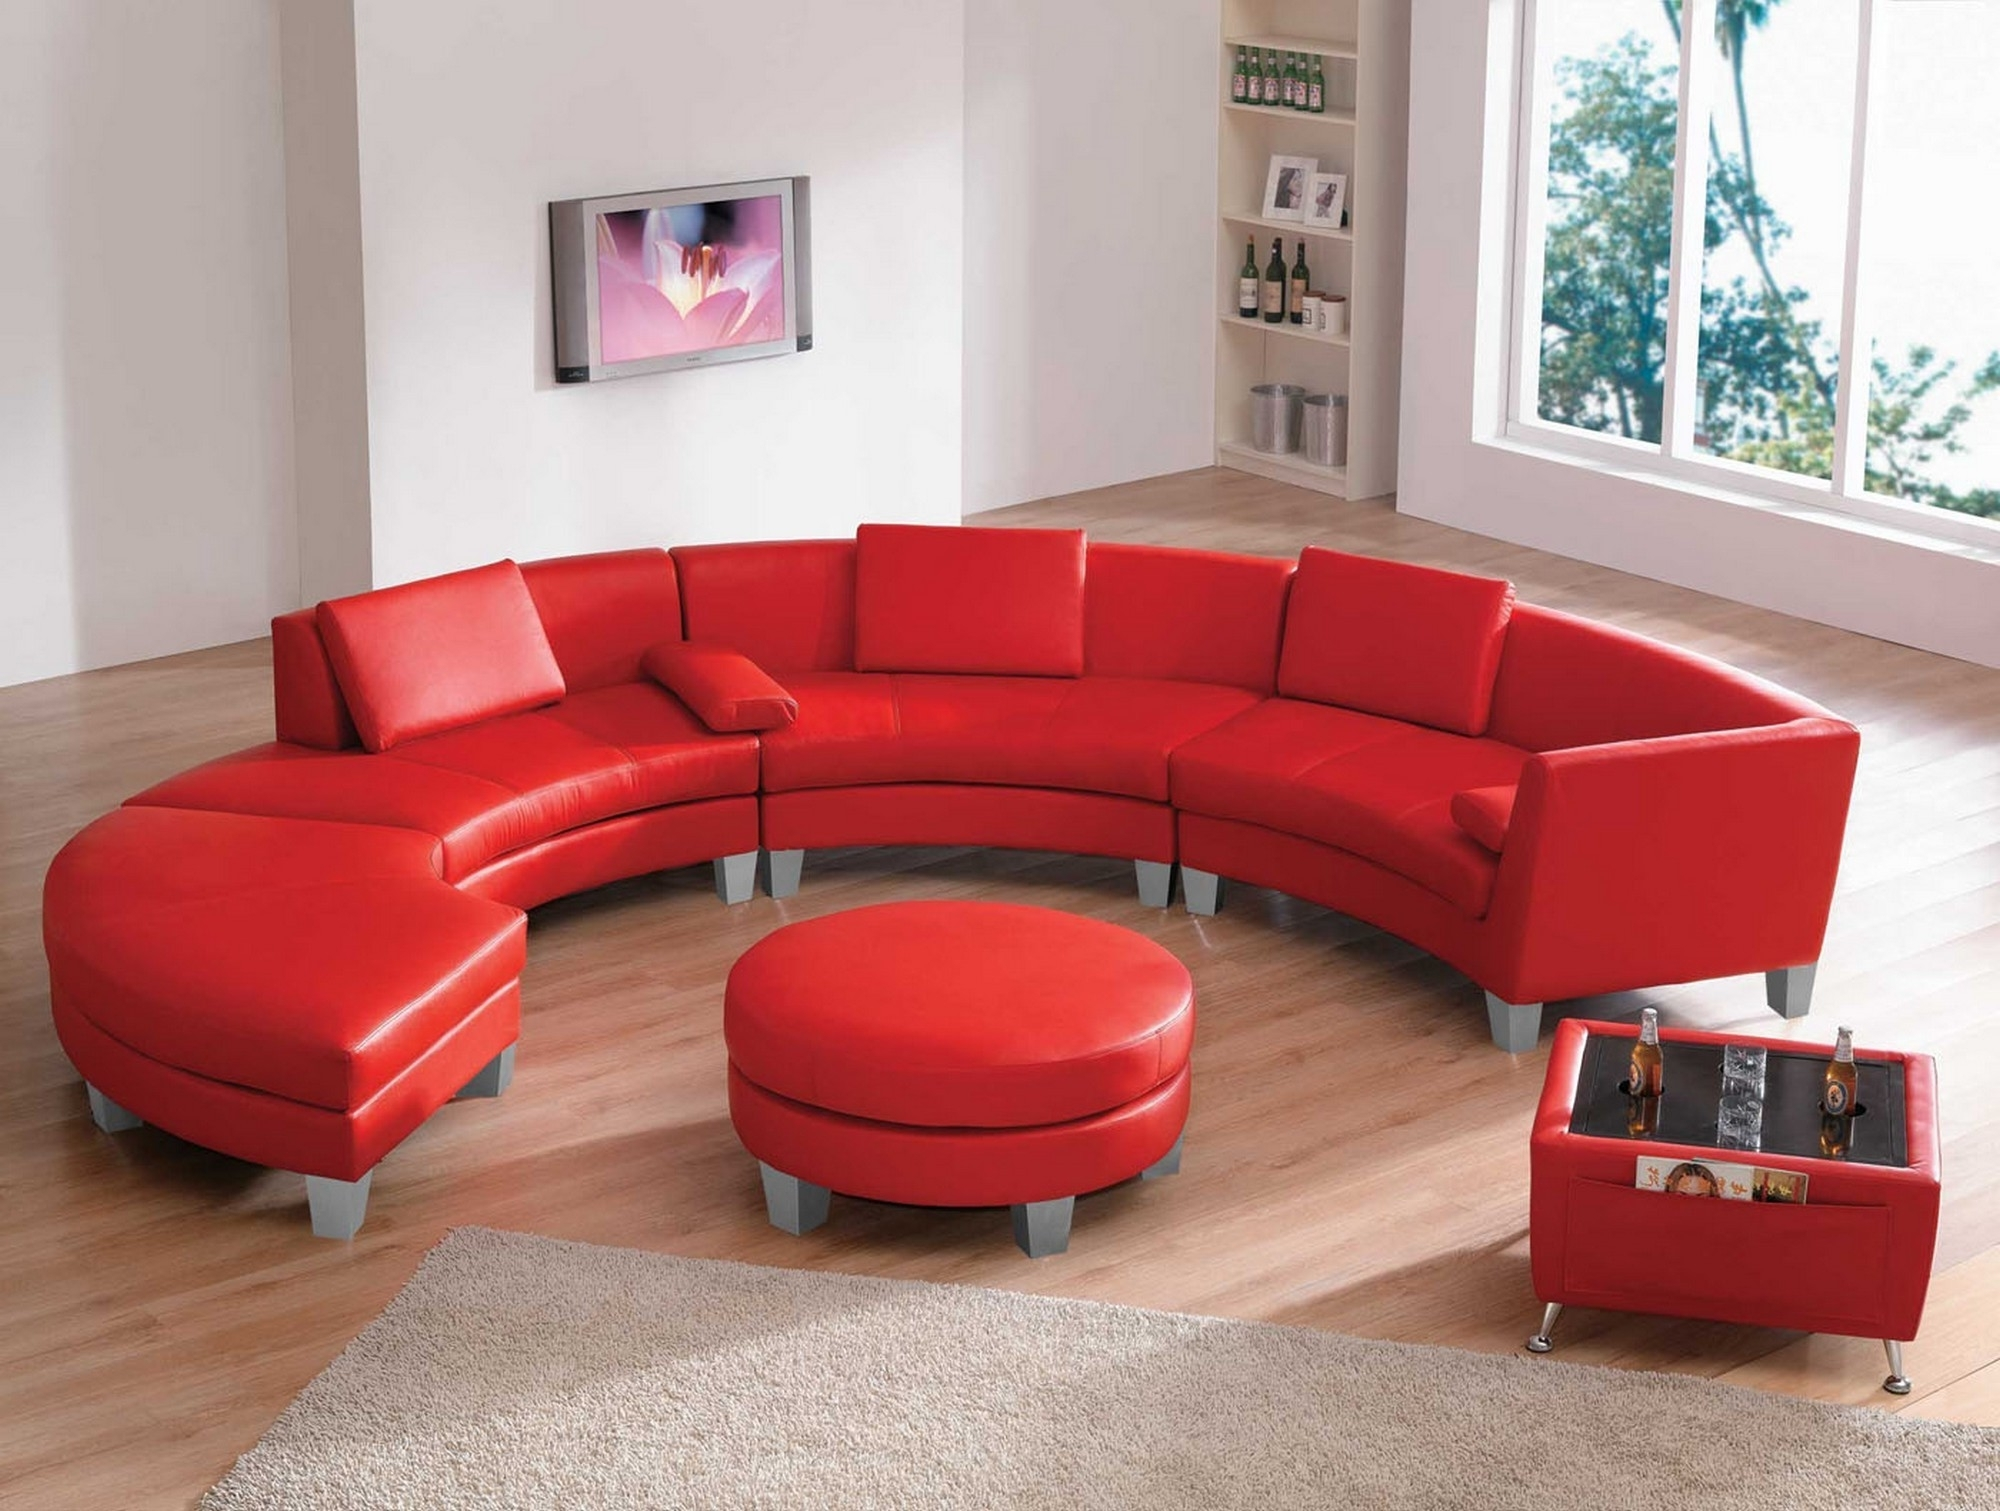 Red Faux Leather Sectionals With Regard To Recent Luxutr Red Faux Leather Sofa Mixed White Cushions And Chromed (View 15 of 20)